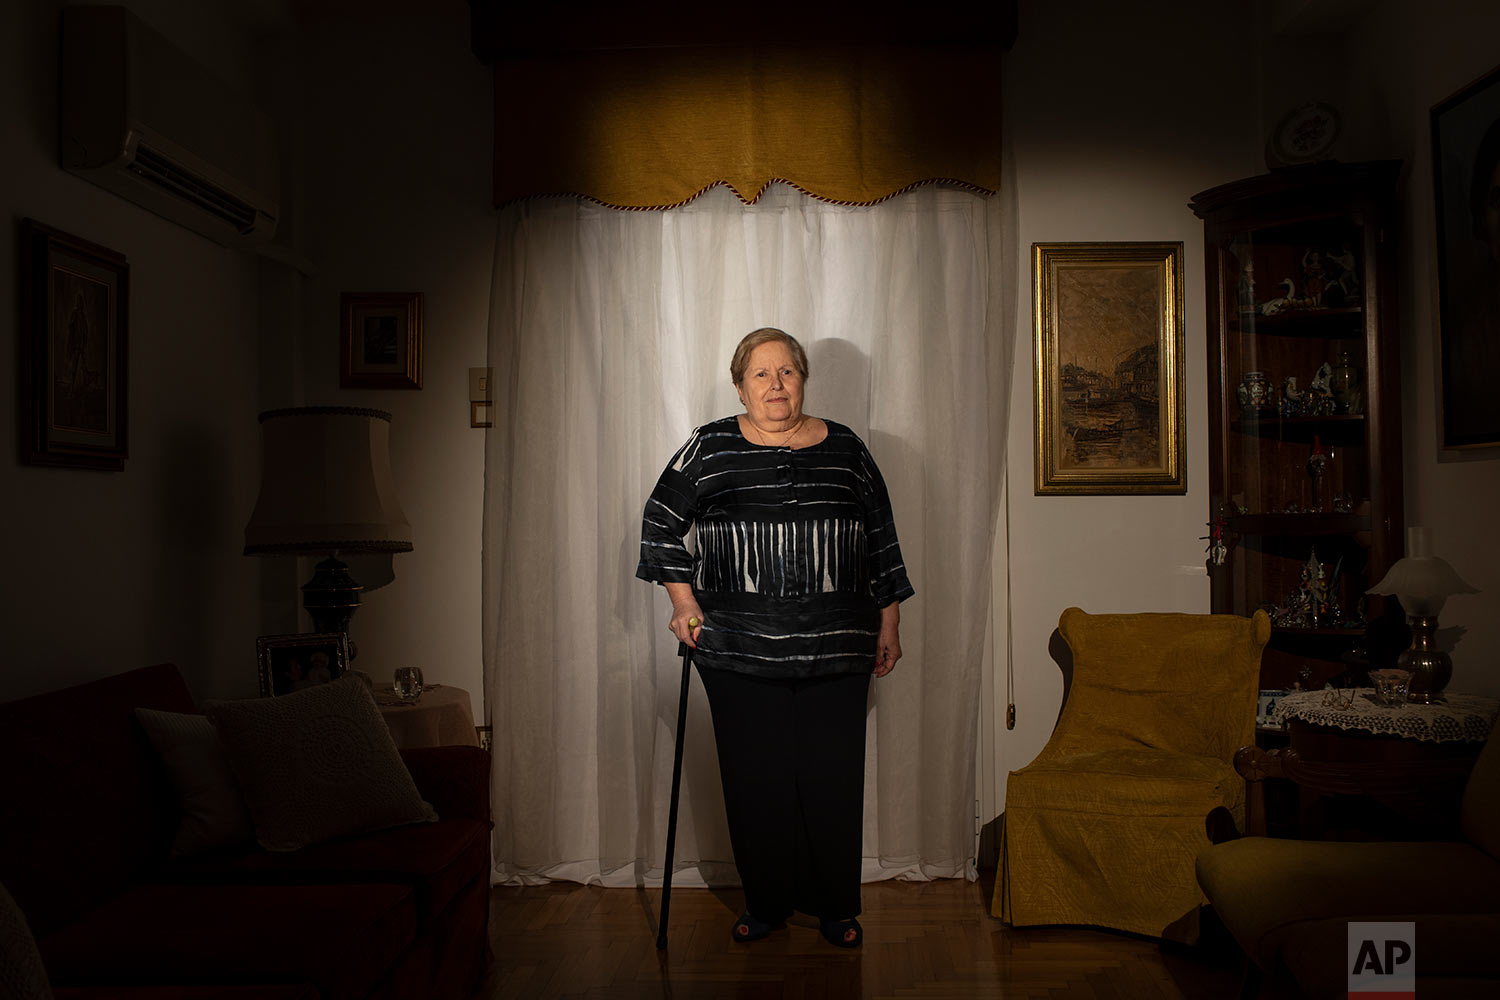 Christina Samada, a 75-year-old pensioner, poses for a photo in her house in Athens. (AP Photo/Petros Giannakouris)